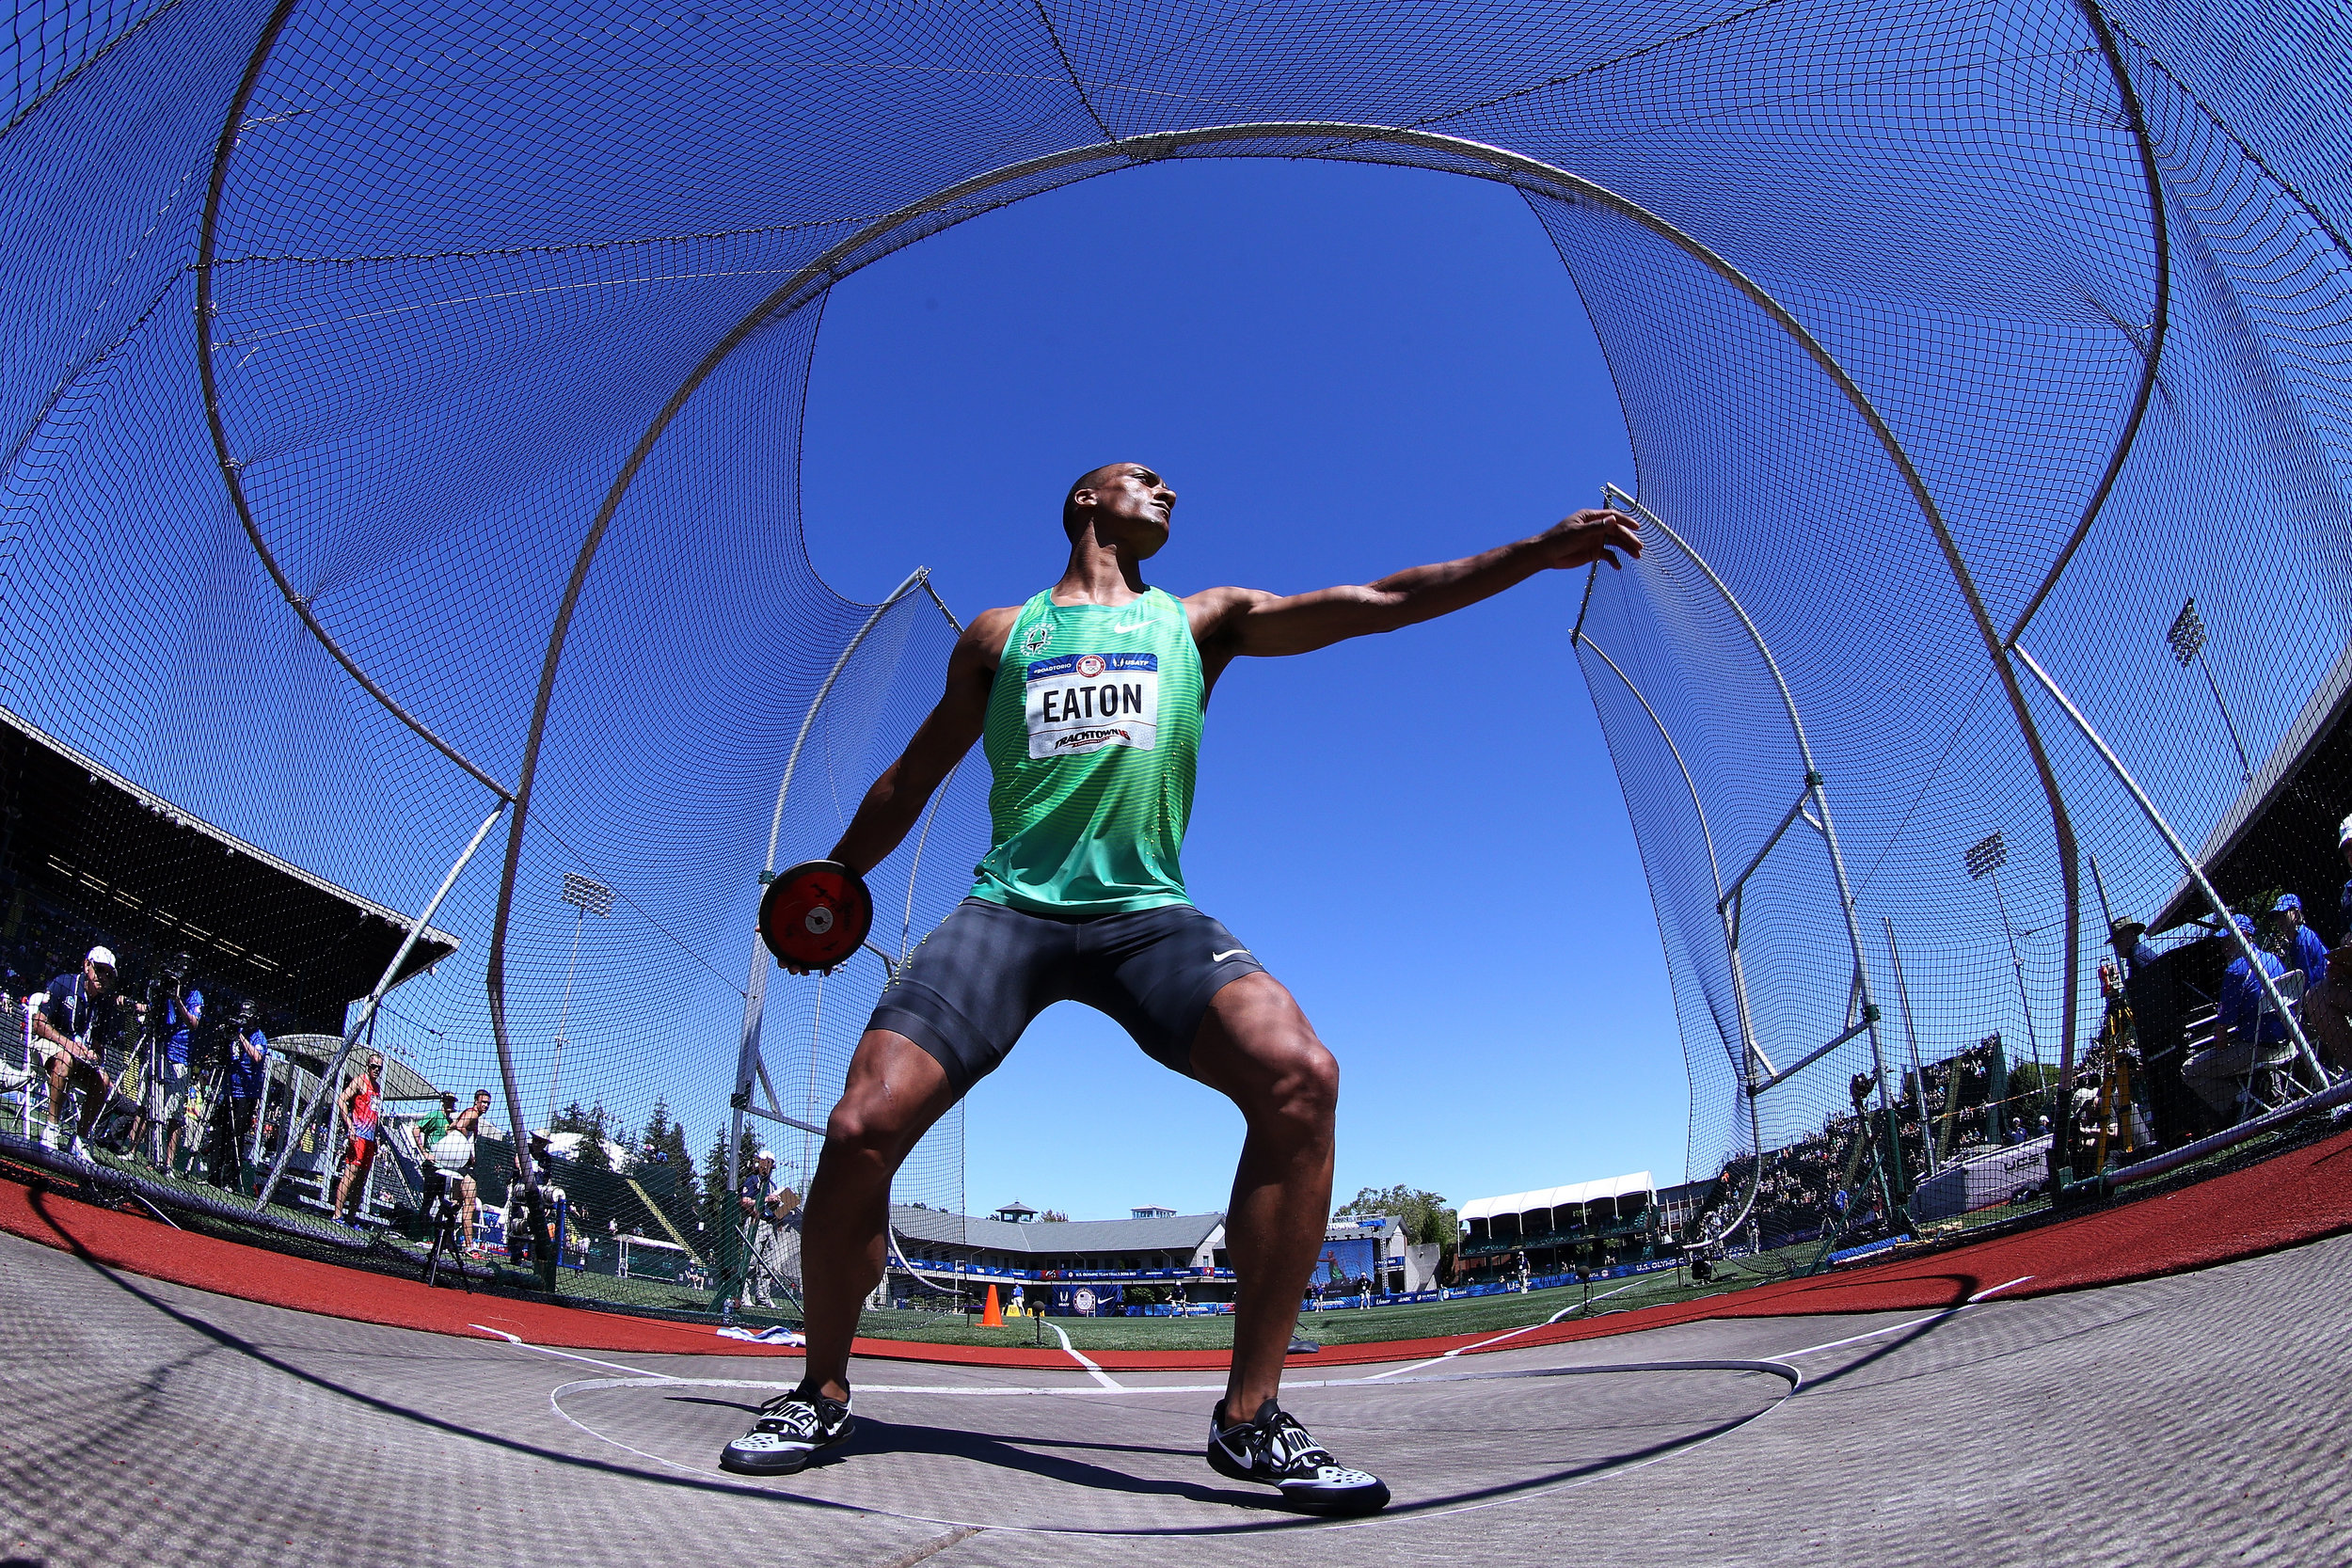 Ashton Eaton throwing in the decathlon discus // Getty Images